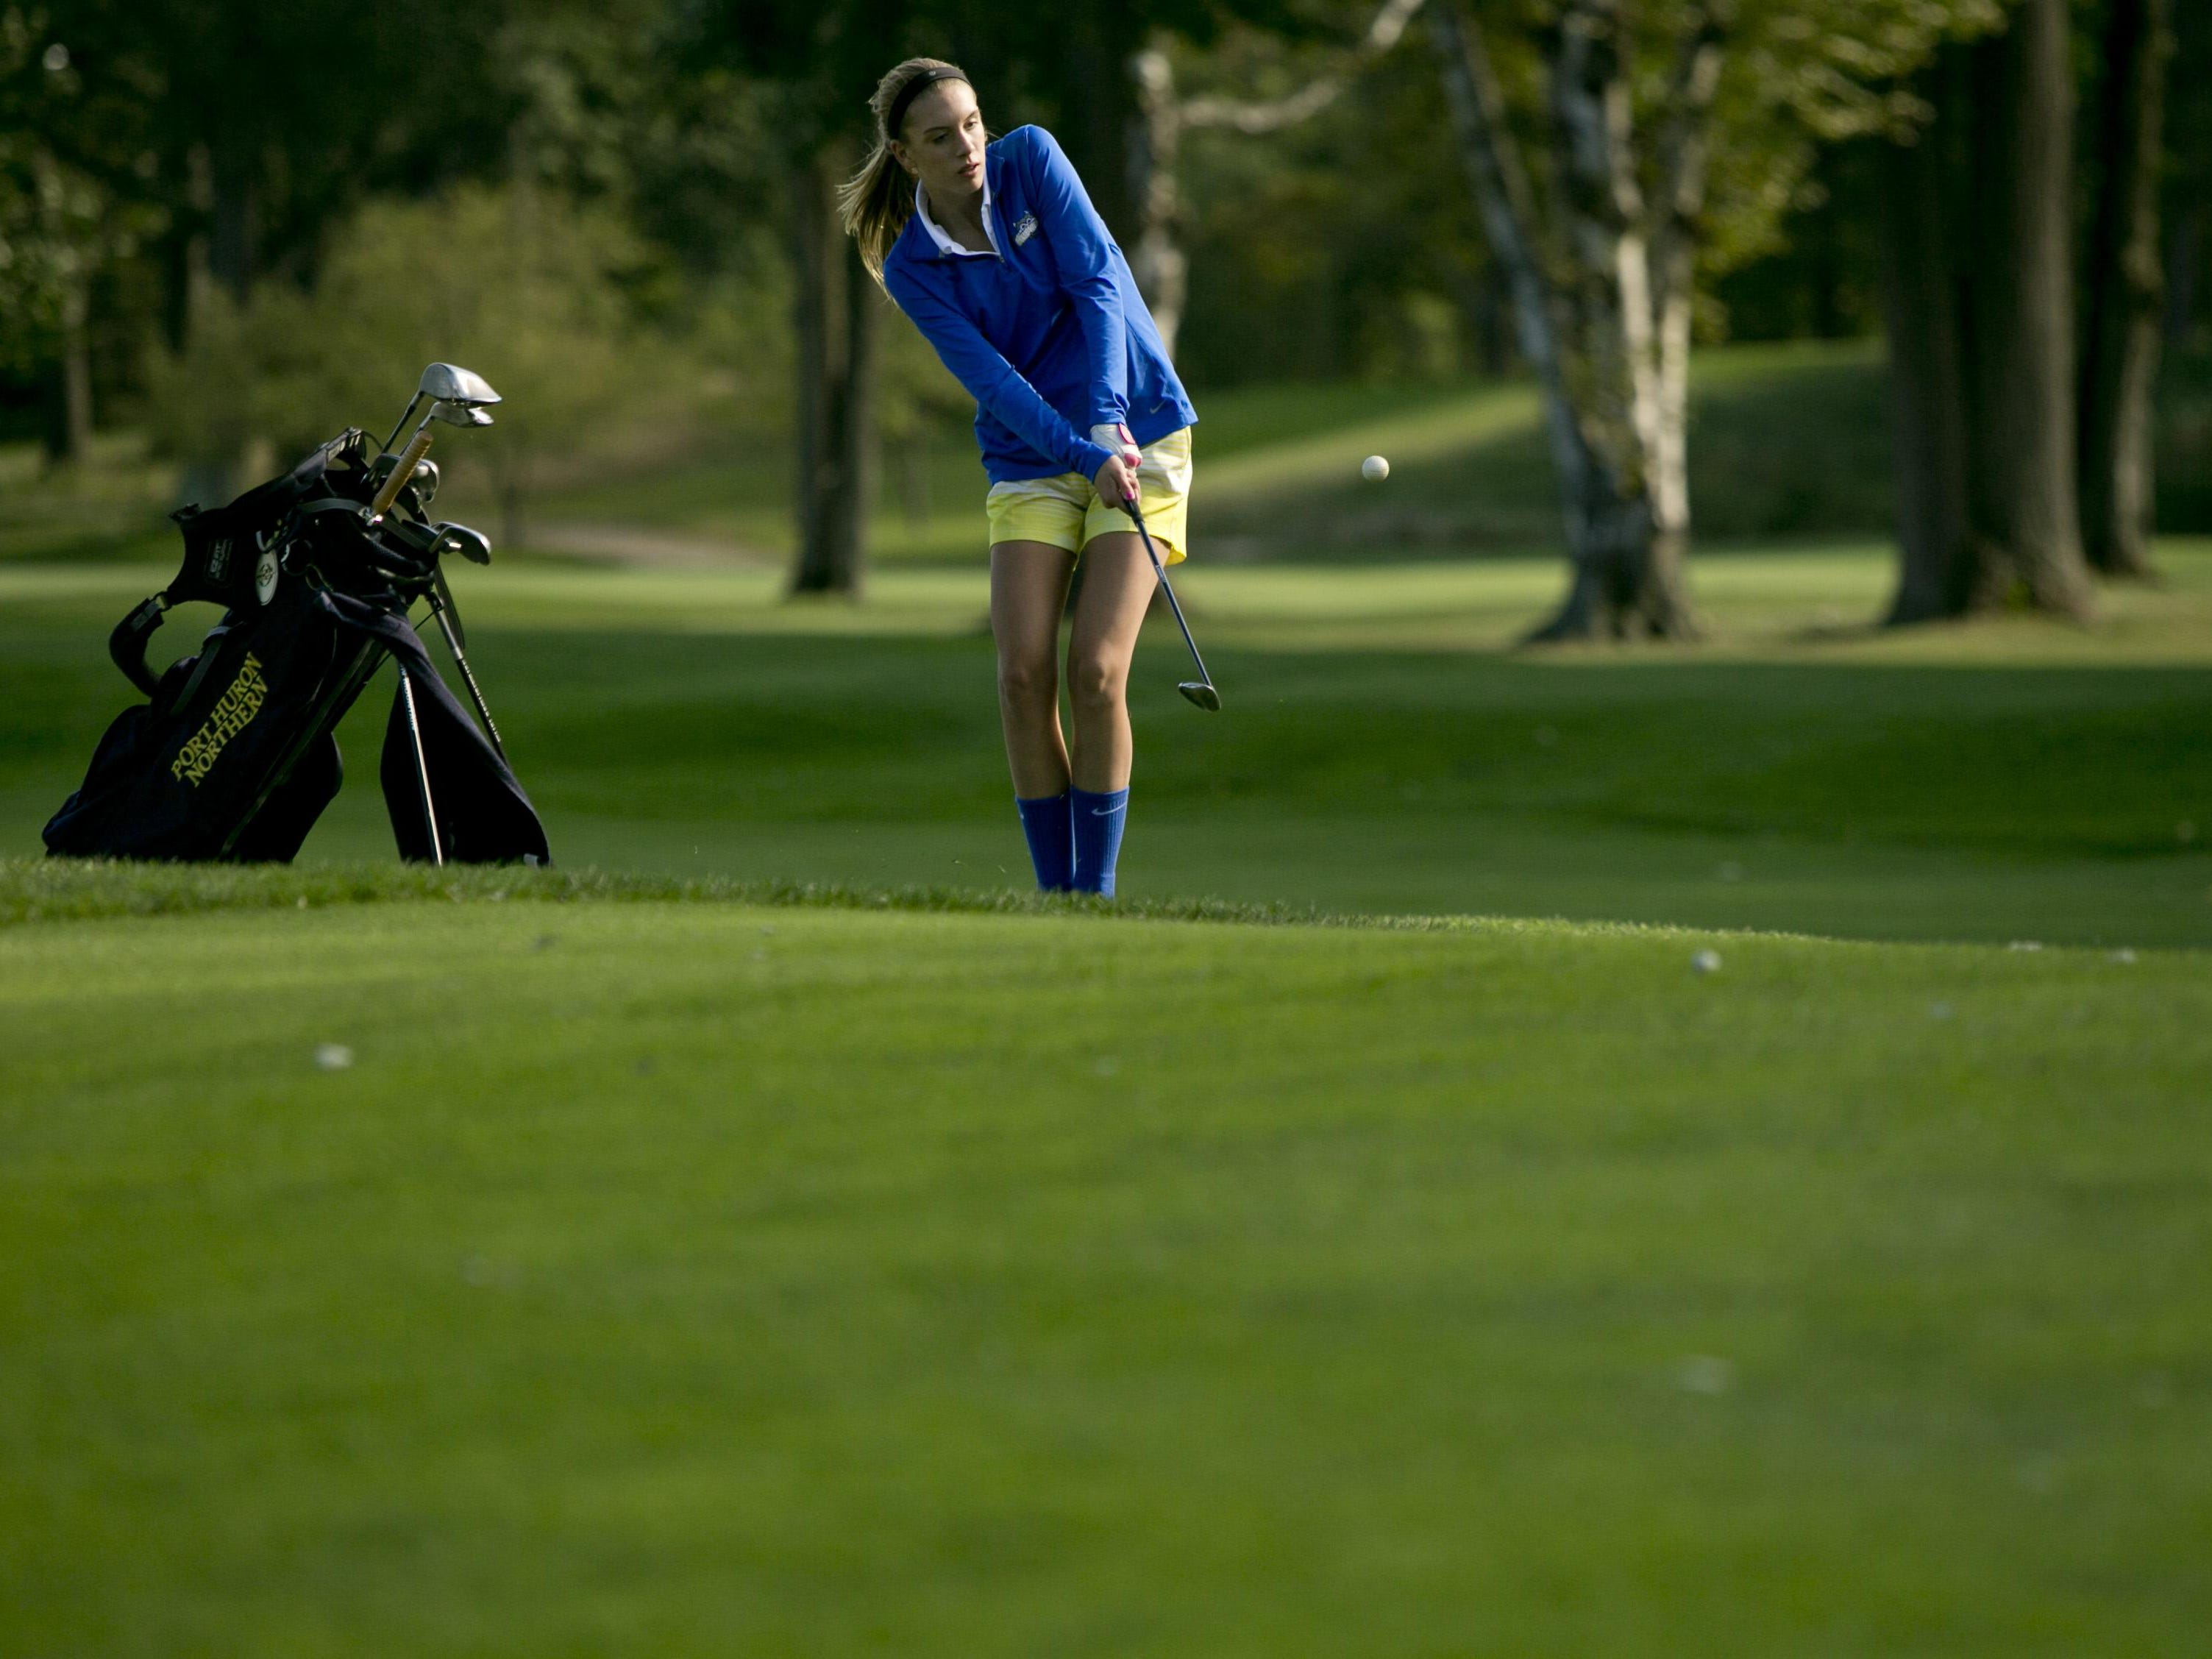 Port Huron Northern freshman Delaney Ward takes a shot Wednesday, September 30, 2015 at the Port Huron Golf Club.